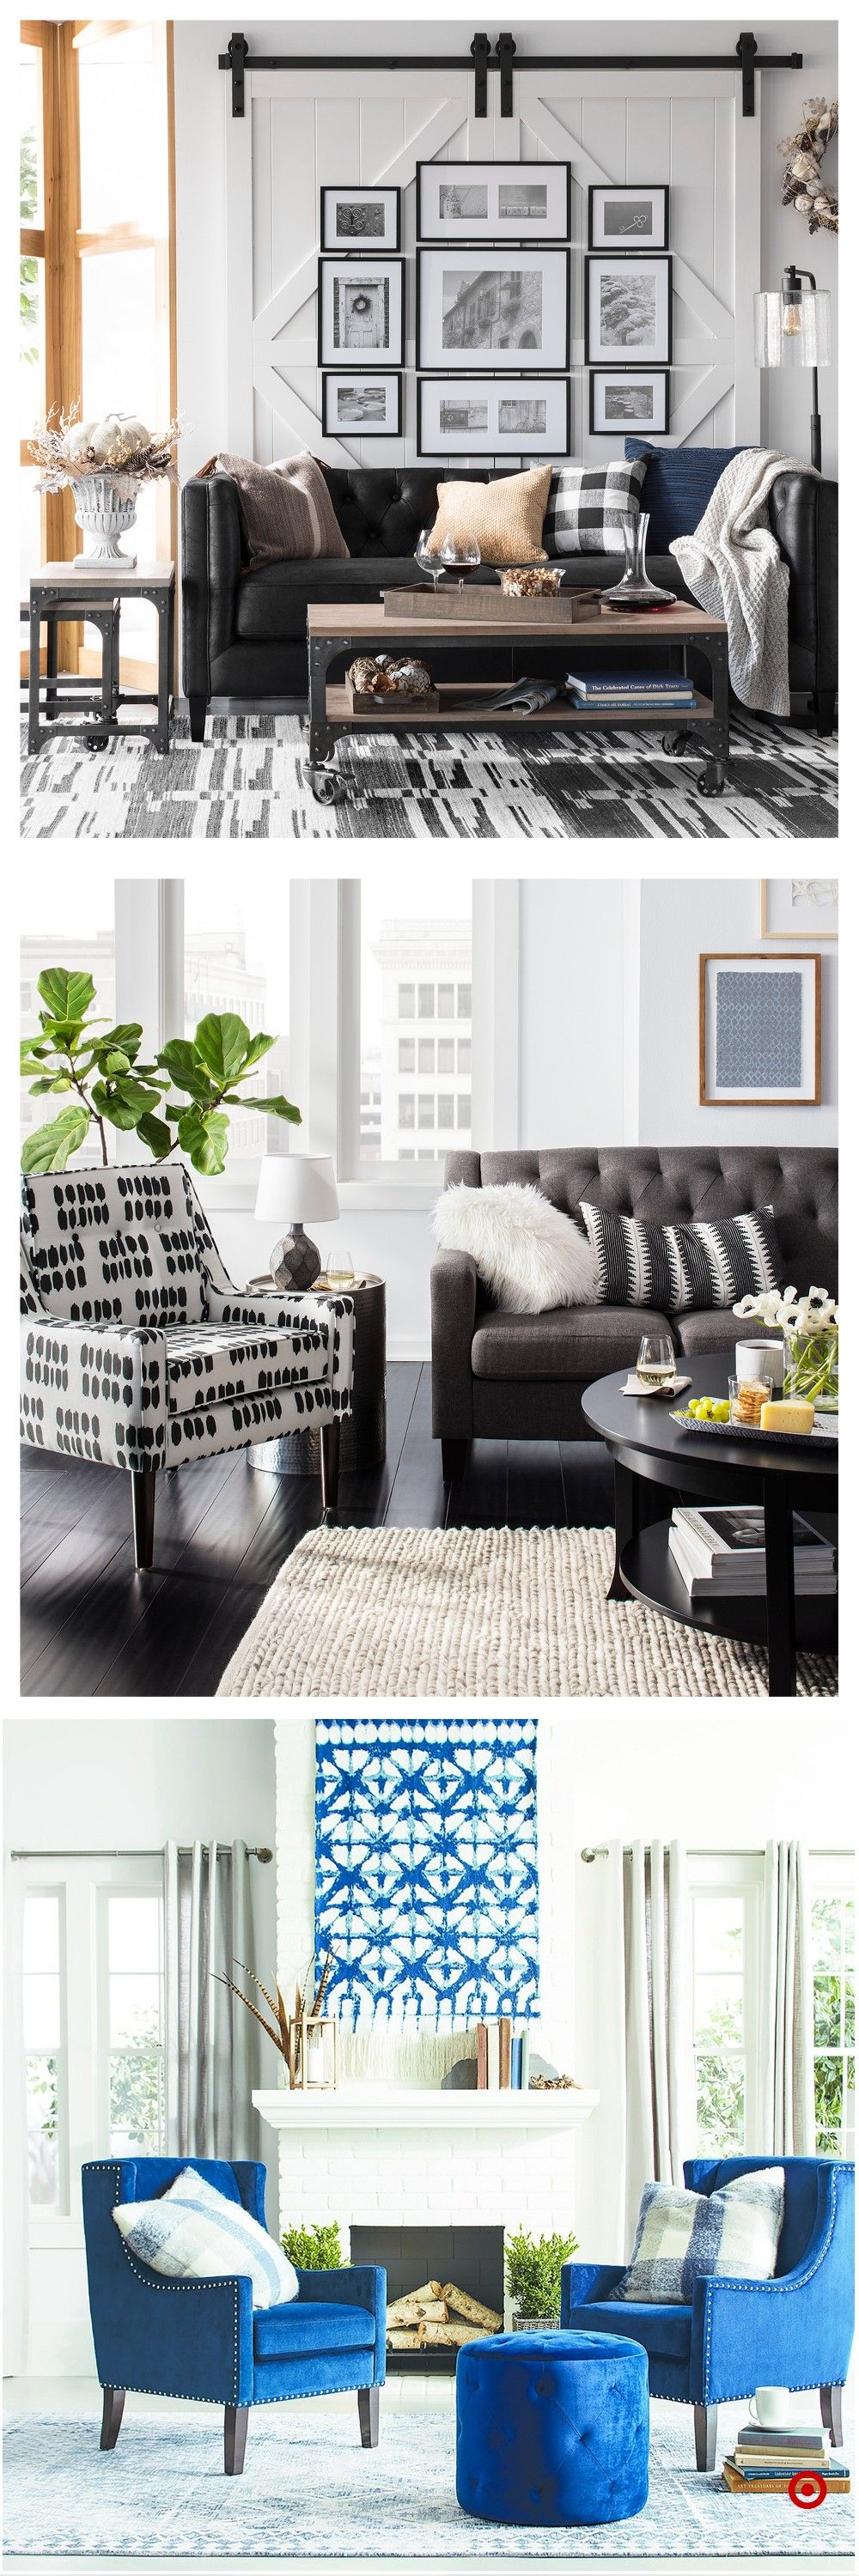 Shop Target For Decorative Pillow You Will Love At Great Low Prices Free Shipping On Orders Apartment Decor Interior Design Living Room Warm Home Living Room